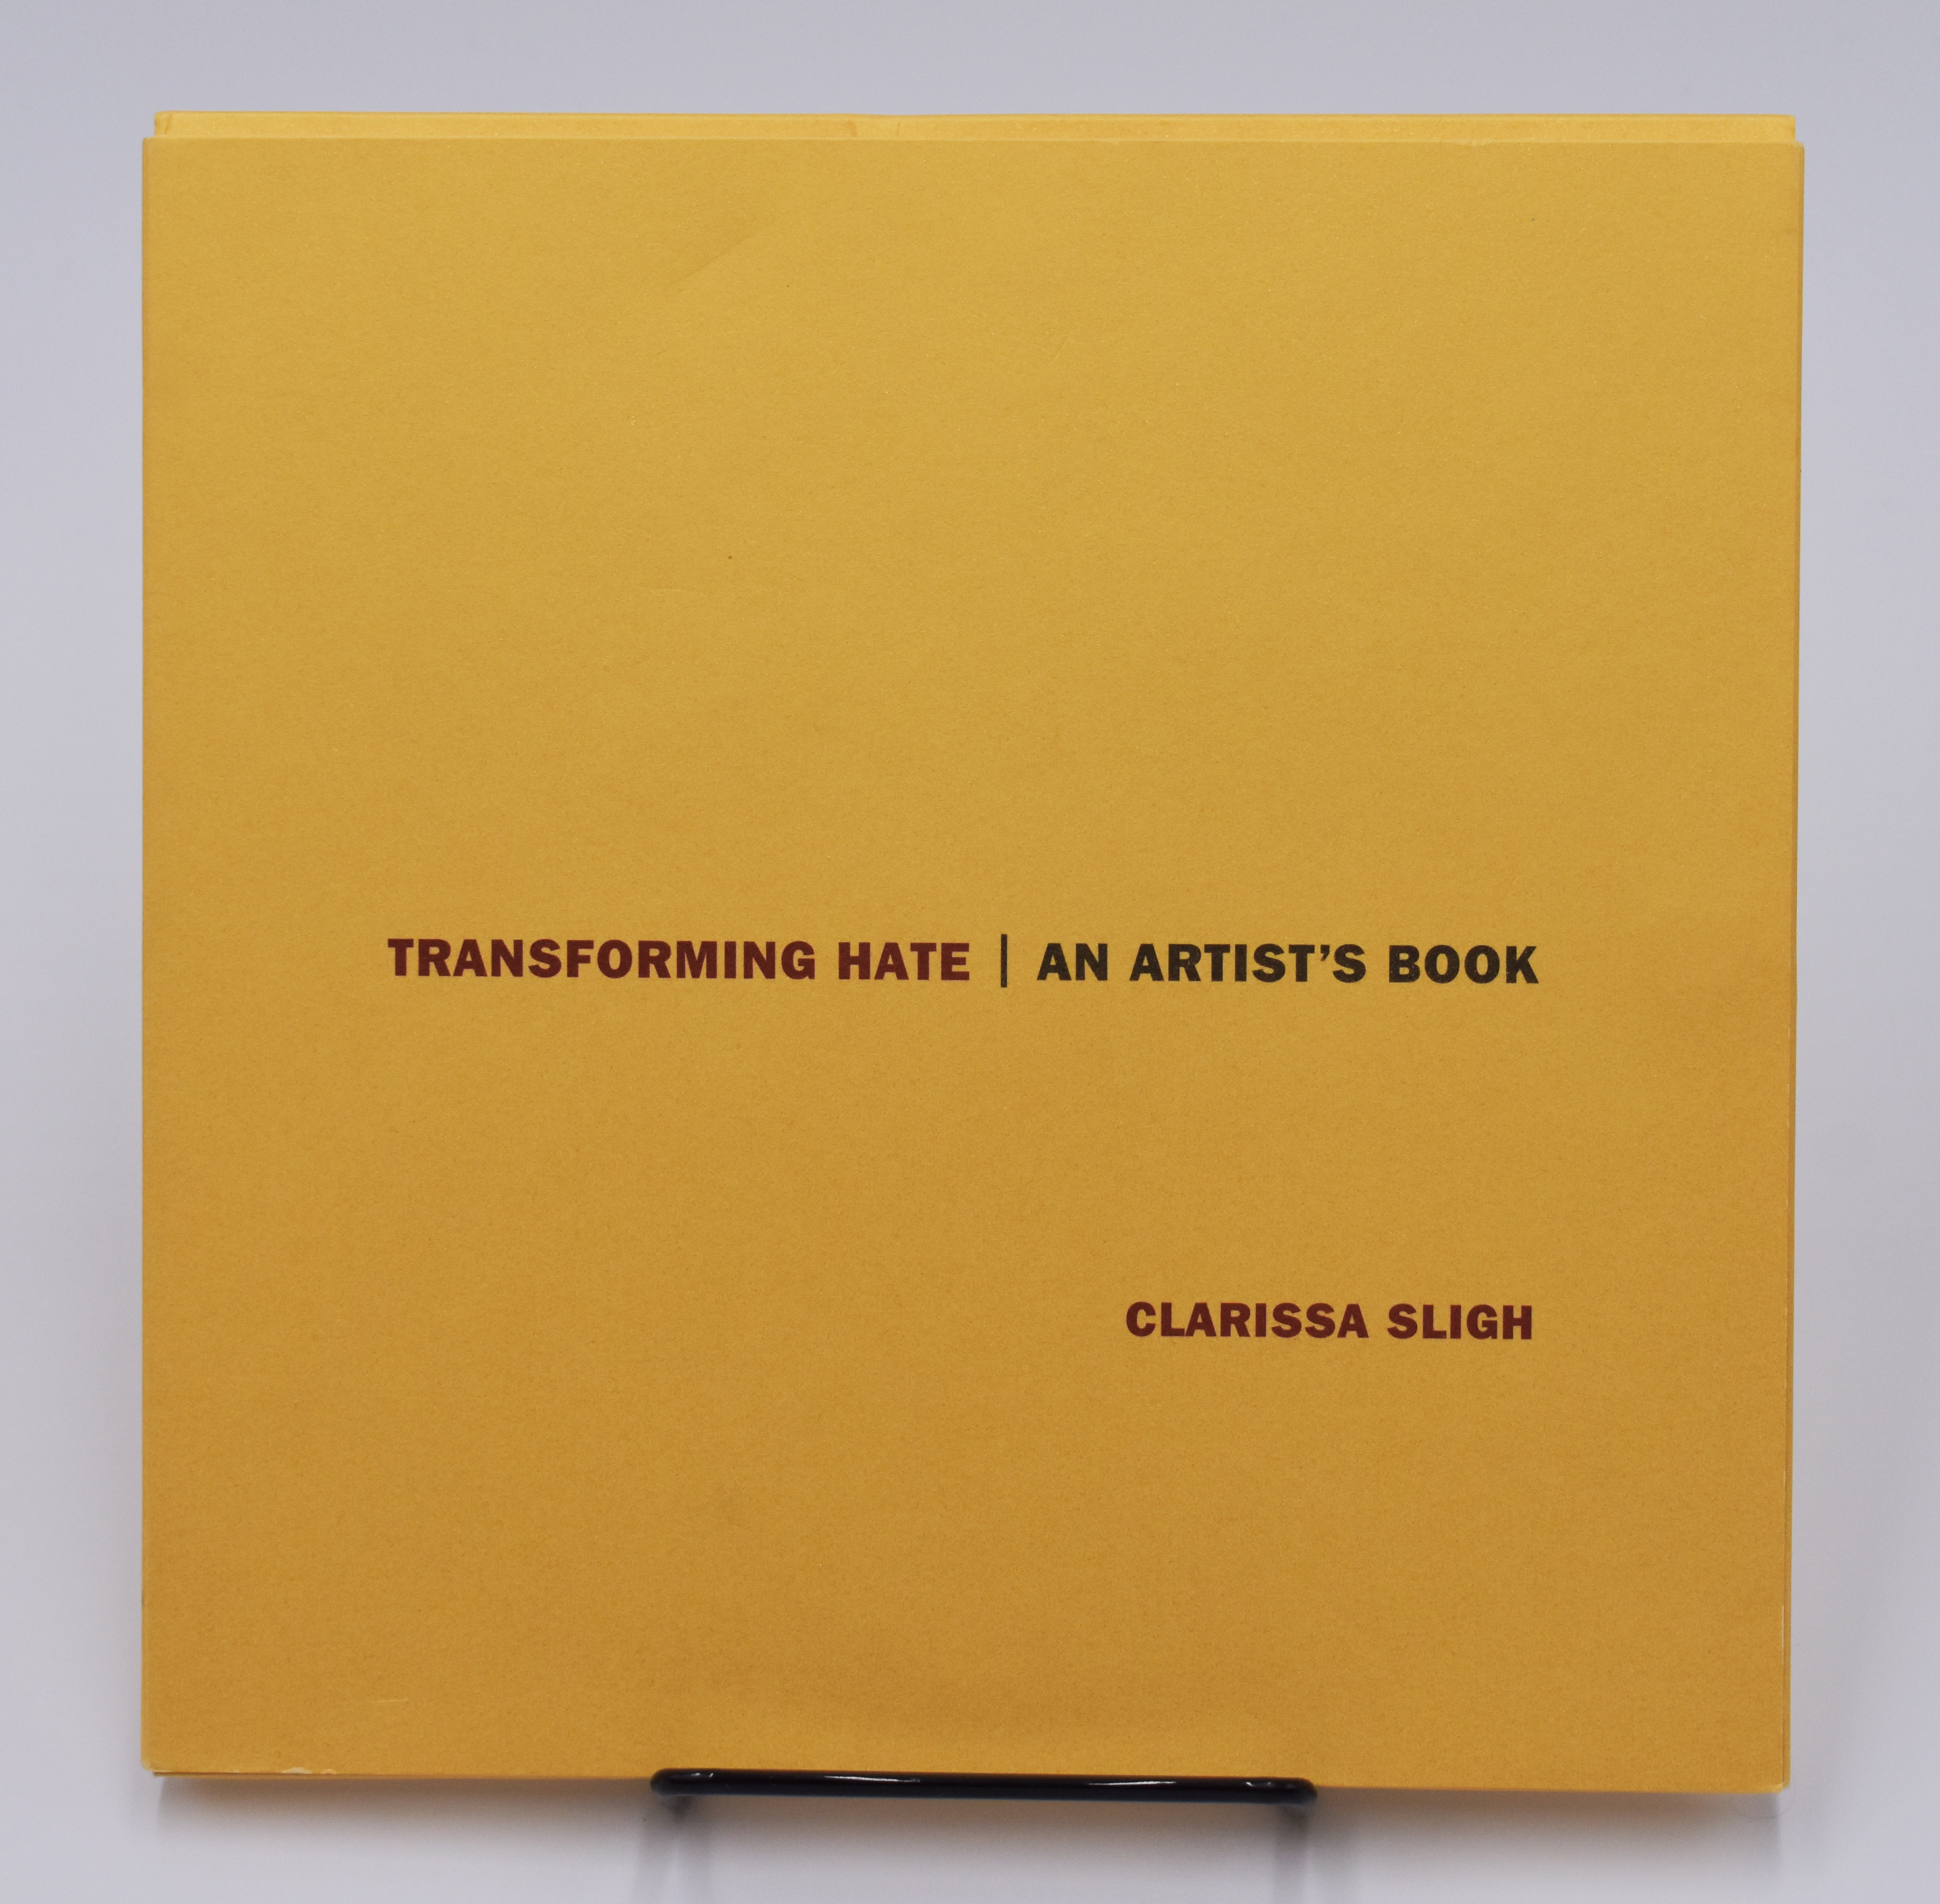 Cover of artist's book